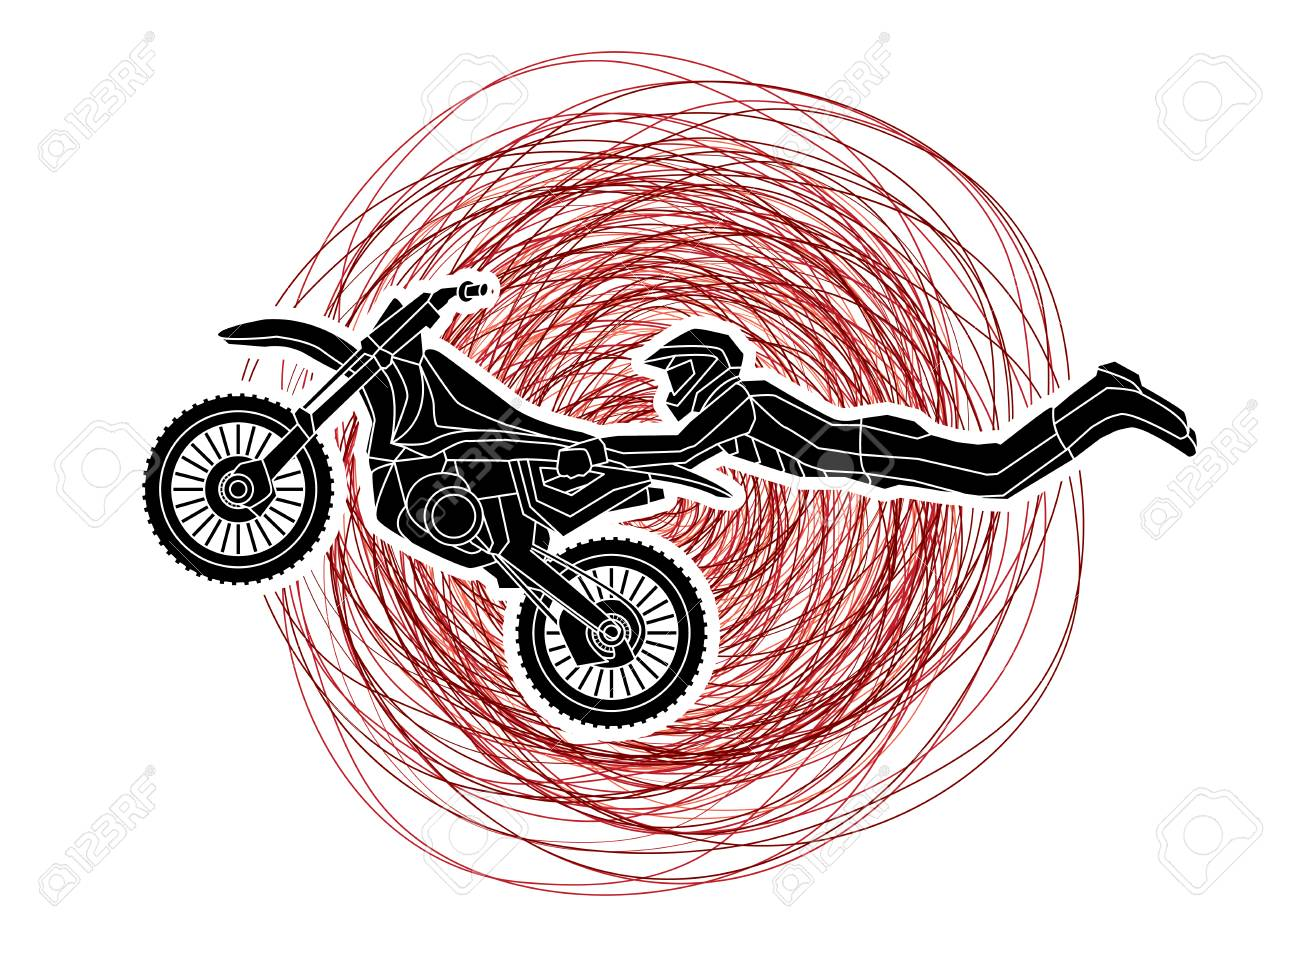 Freestyle Motocross Flying Trick Designed On Grunge Stroke Background Royalty Free Cliparts Vectors And Stock Illustration Image 70361451